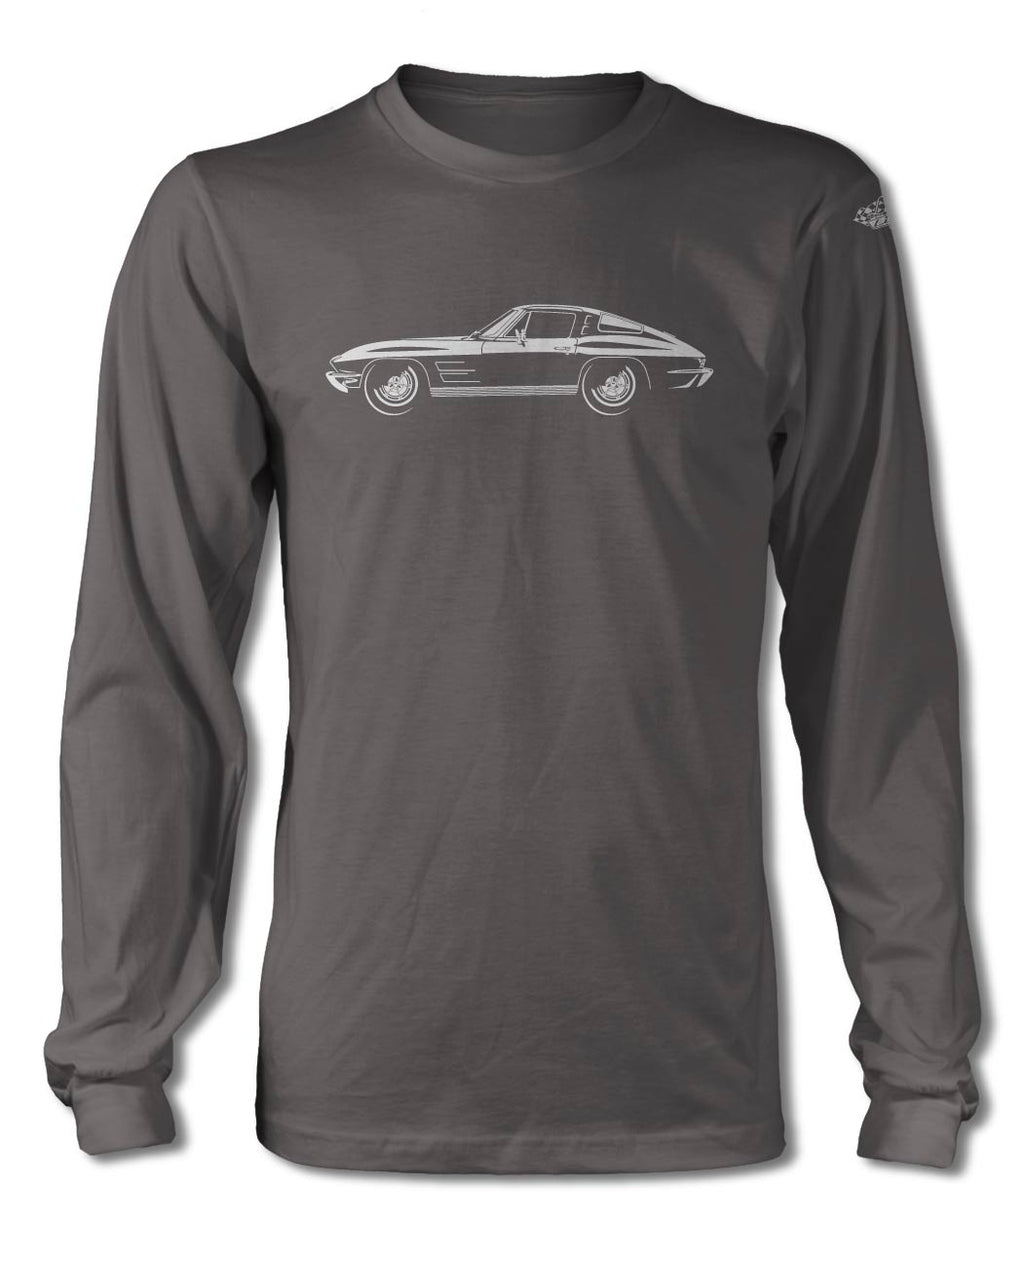 1963 Chevrolet Corvette Sting Ray Split Window C2 T-Shirt - Long Sleeves - Side View